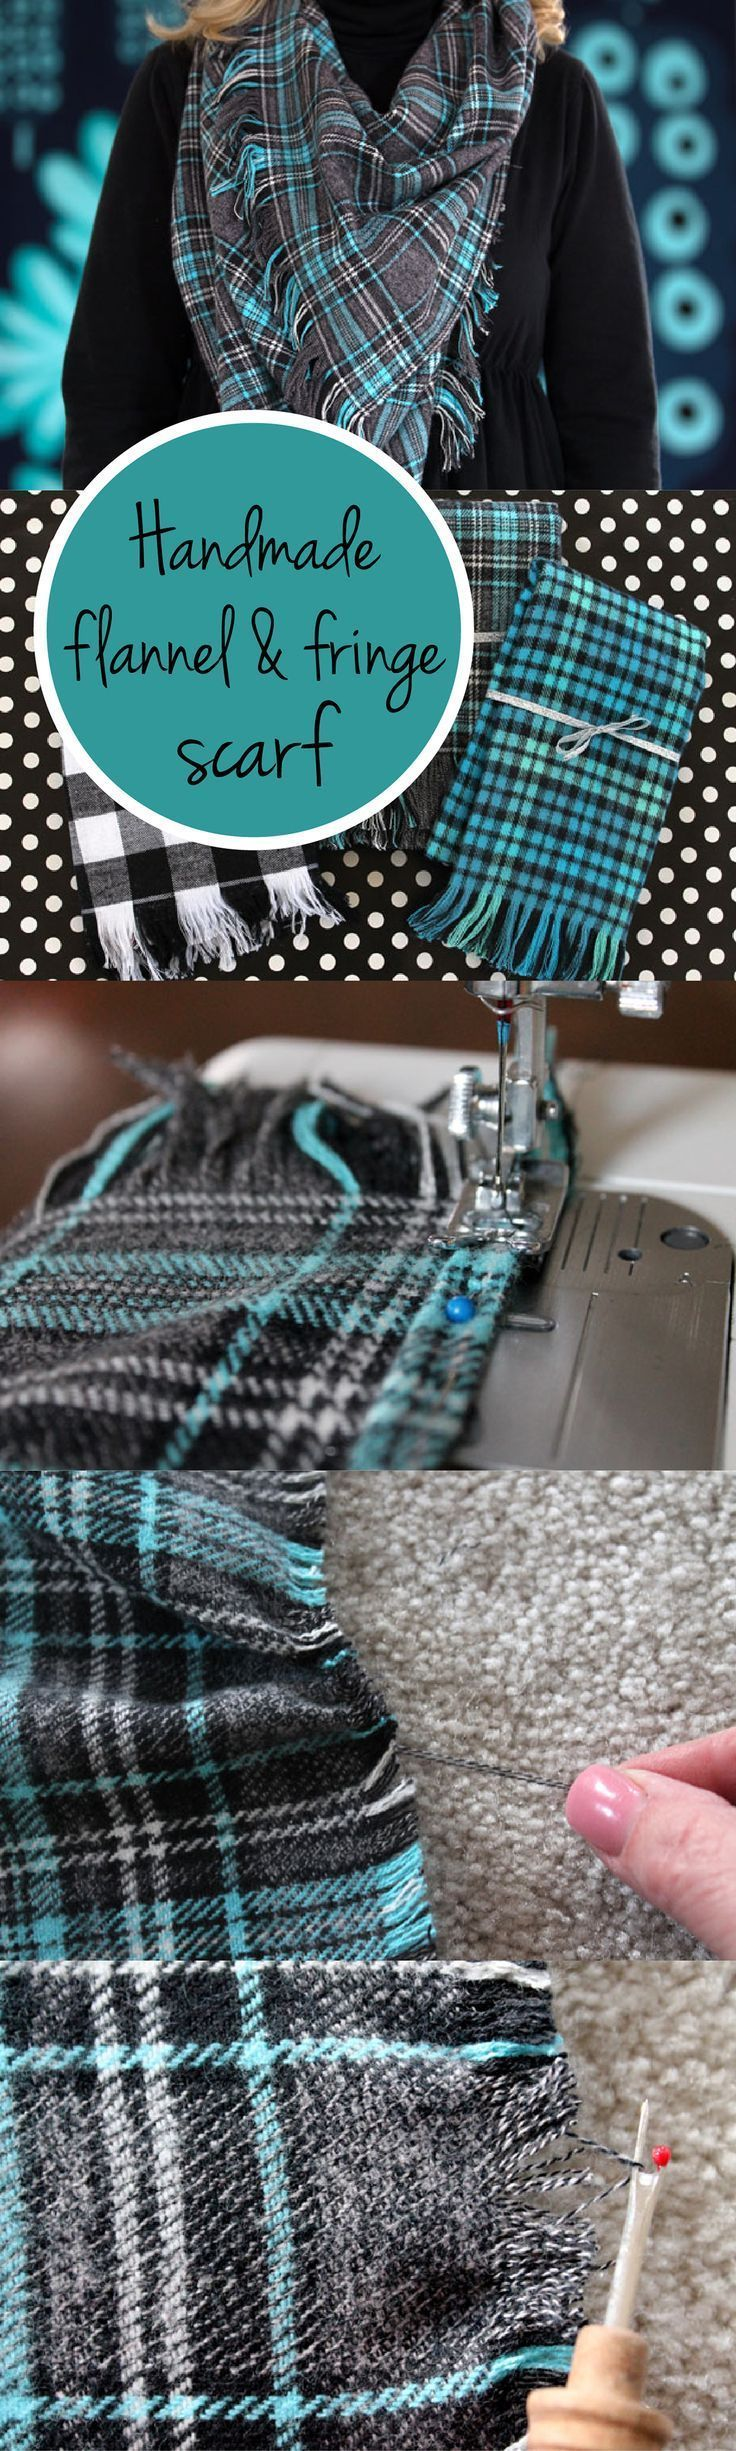 Perfect handmade gift for the holidays! DIY a flannel and fringe scarf that any girl would love to wear.  http://www.ehow.com/ehow-crafts/blog/make-a-handmade-plaid-flannel-and-fringe-scarf/?utm_source=pinterest.com&utm_medium=referral&utm_content=blog&utm_campaign=fanpage